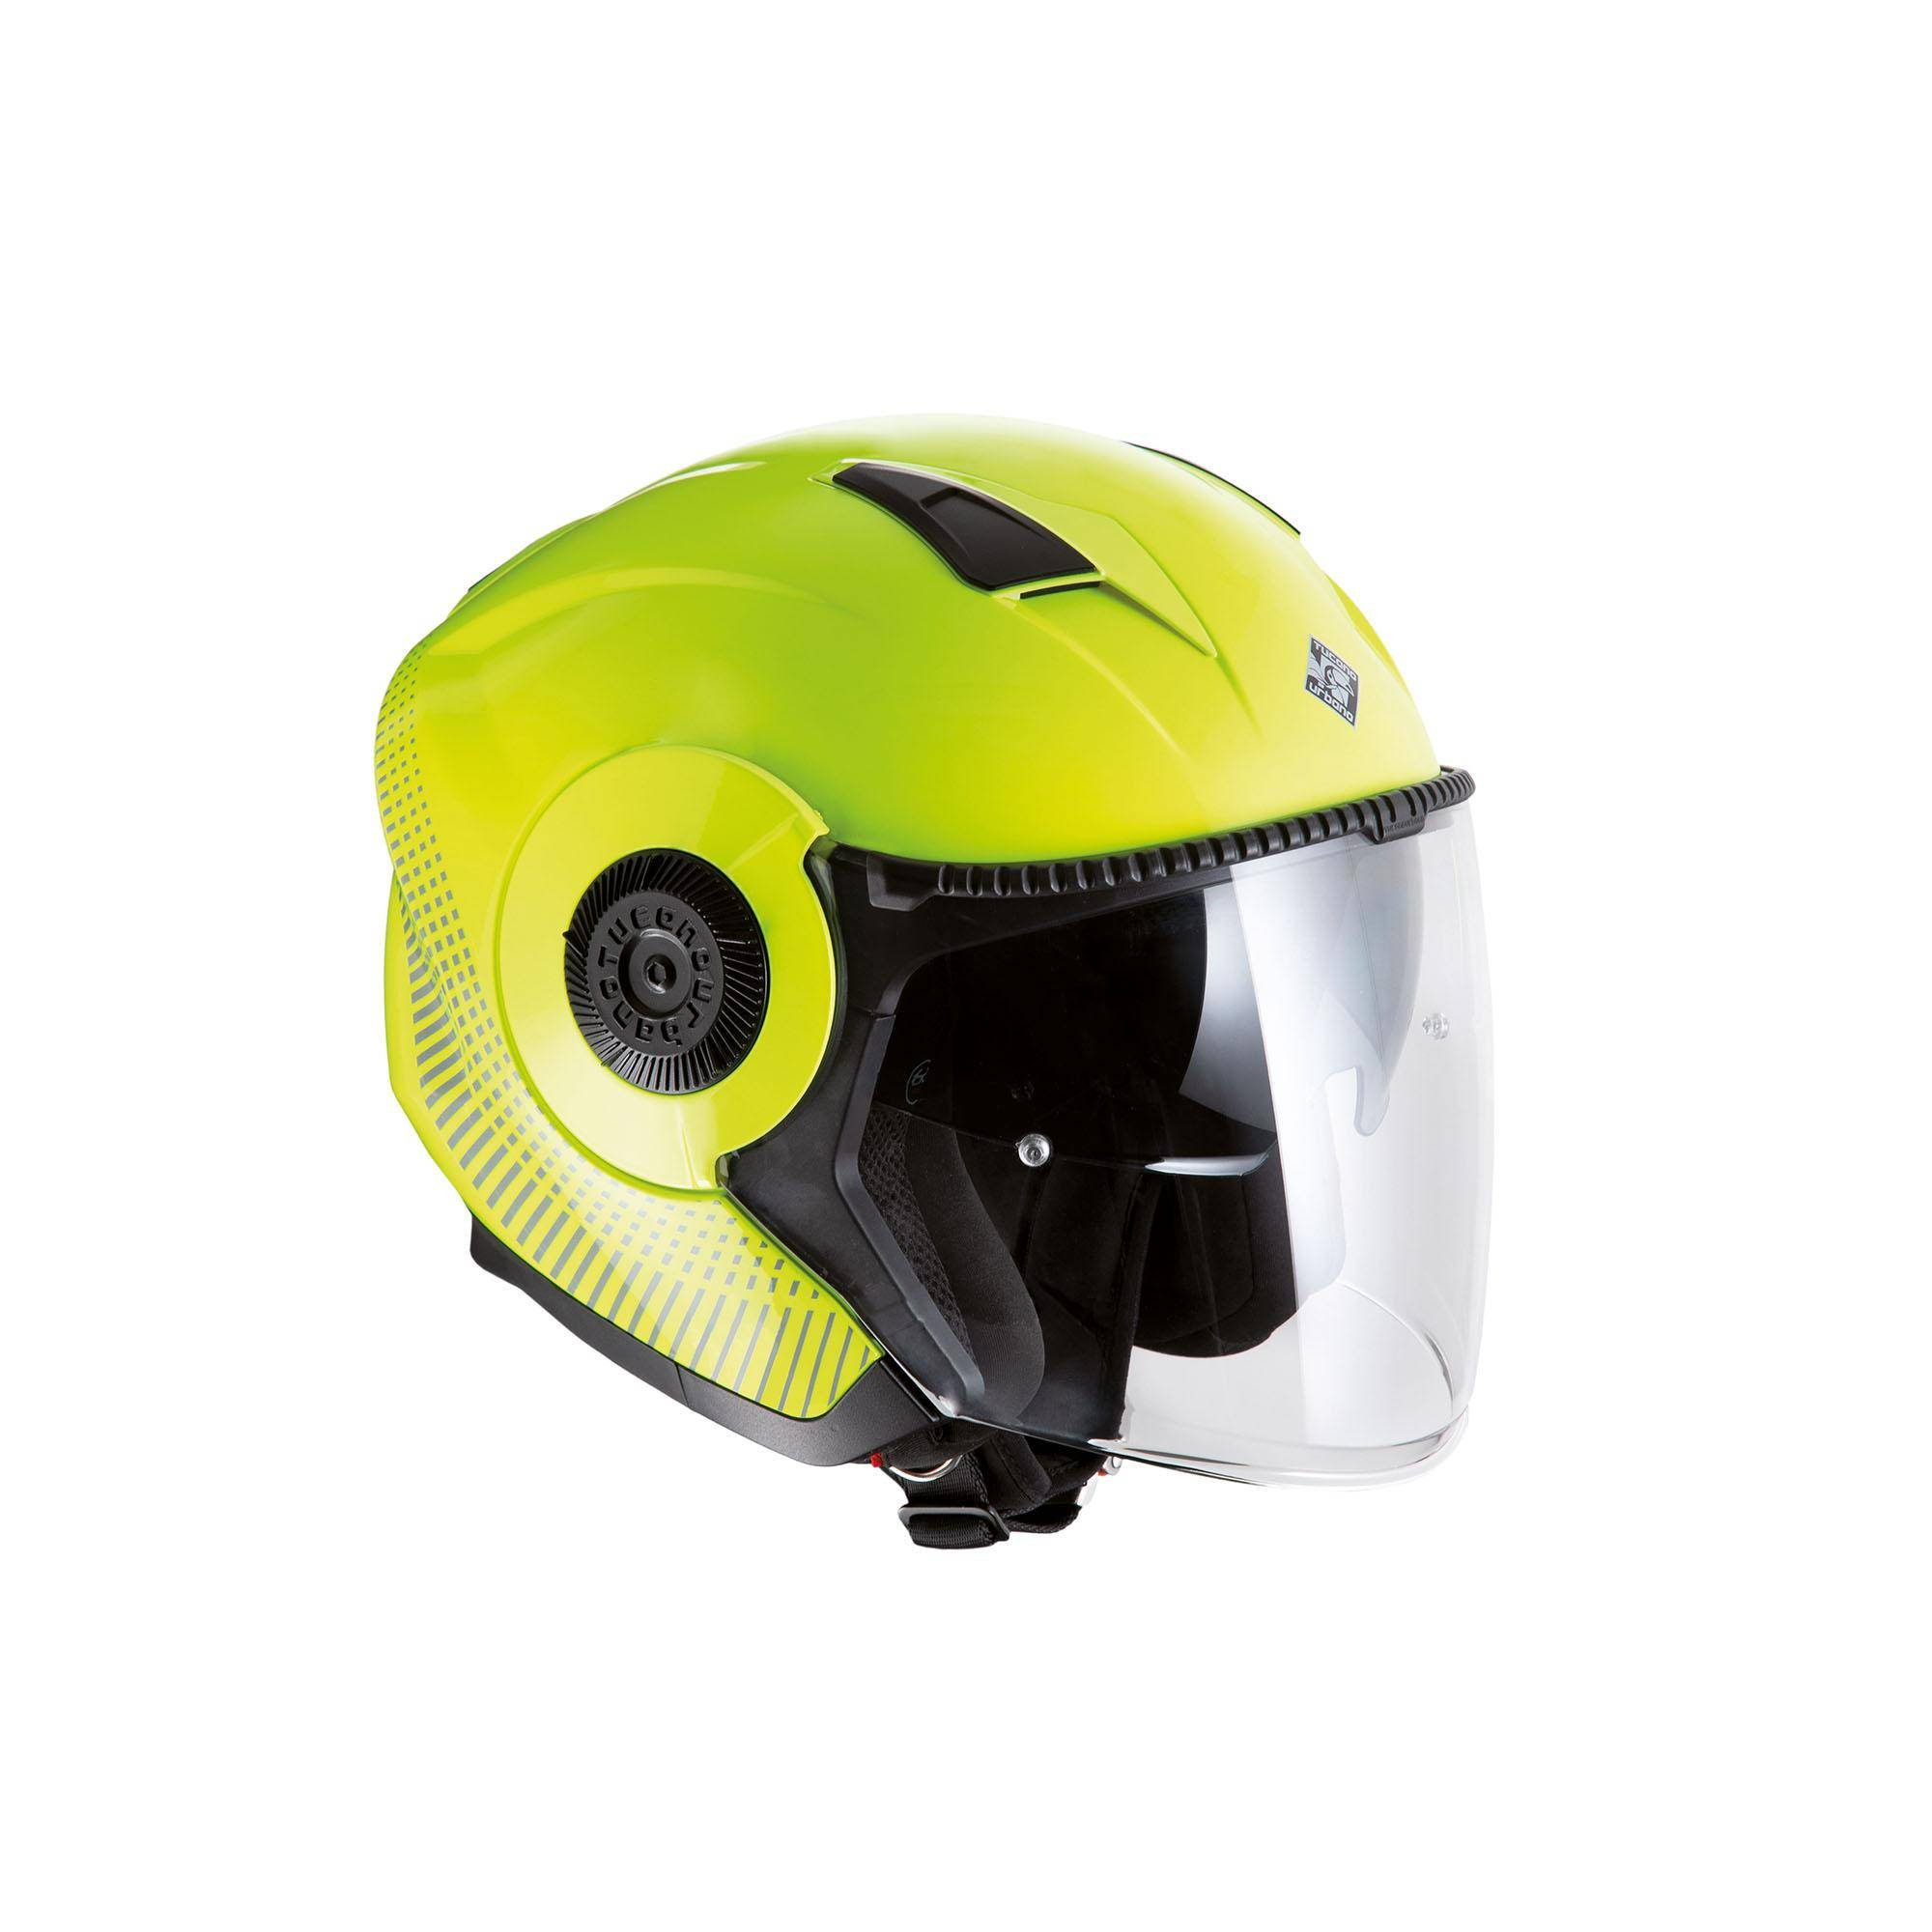 Jet Helmet El'tange Yellow Fluo / Graphic A – Glossy